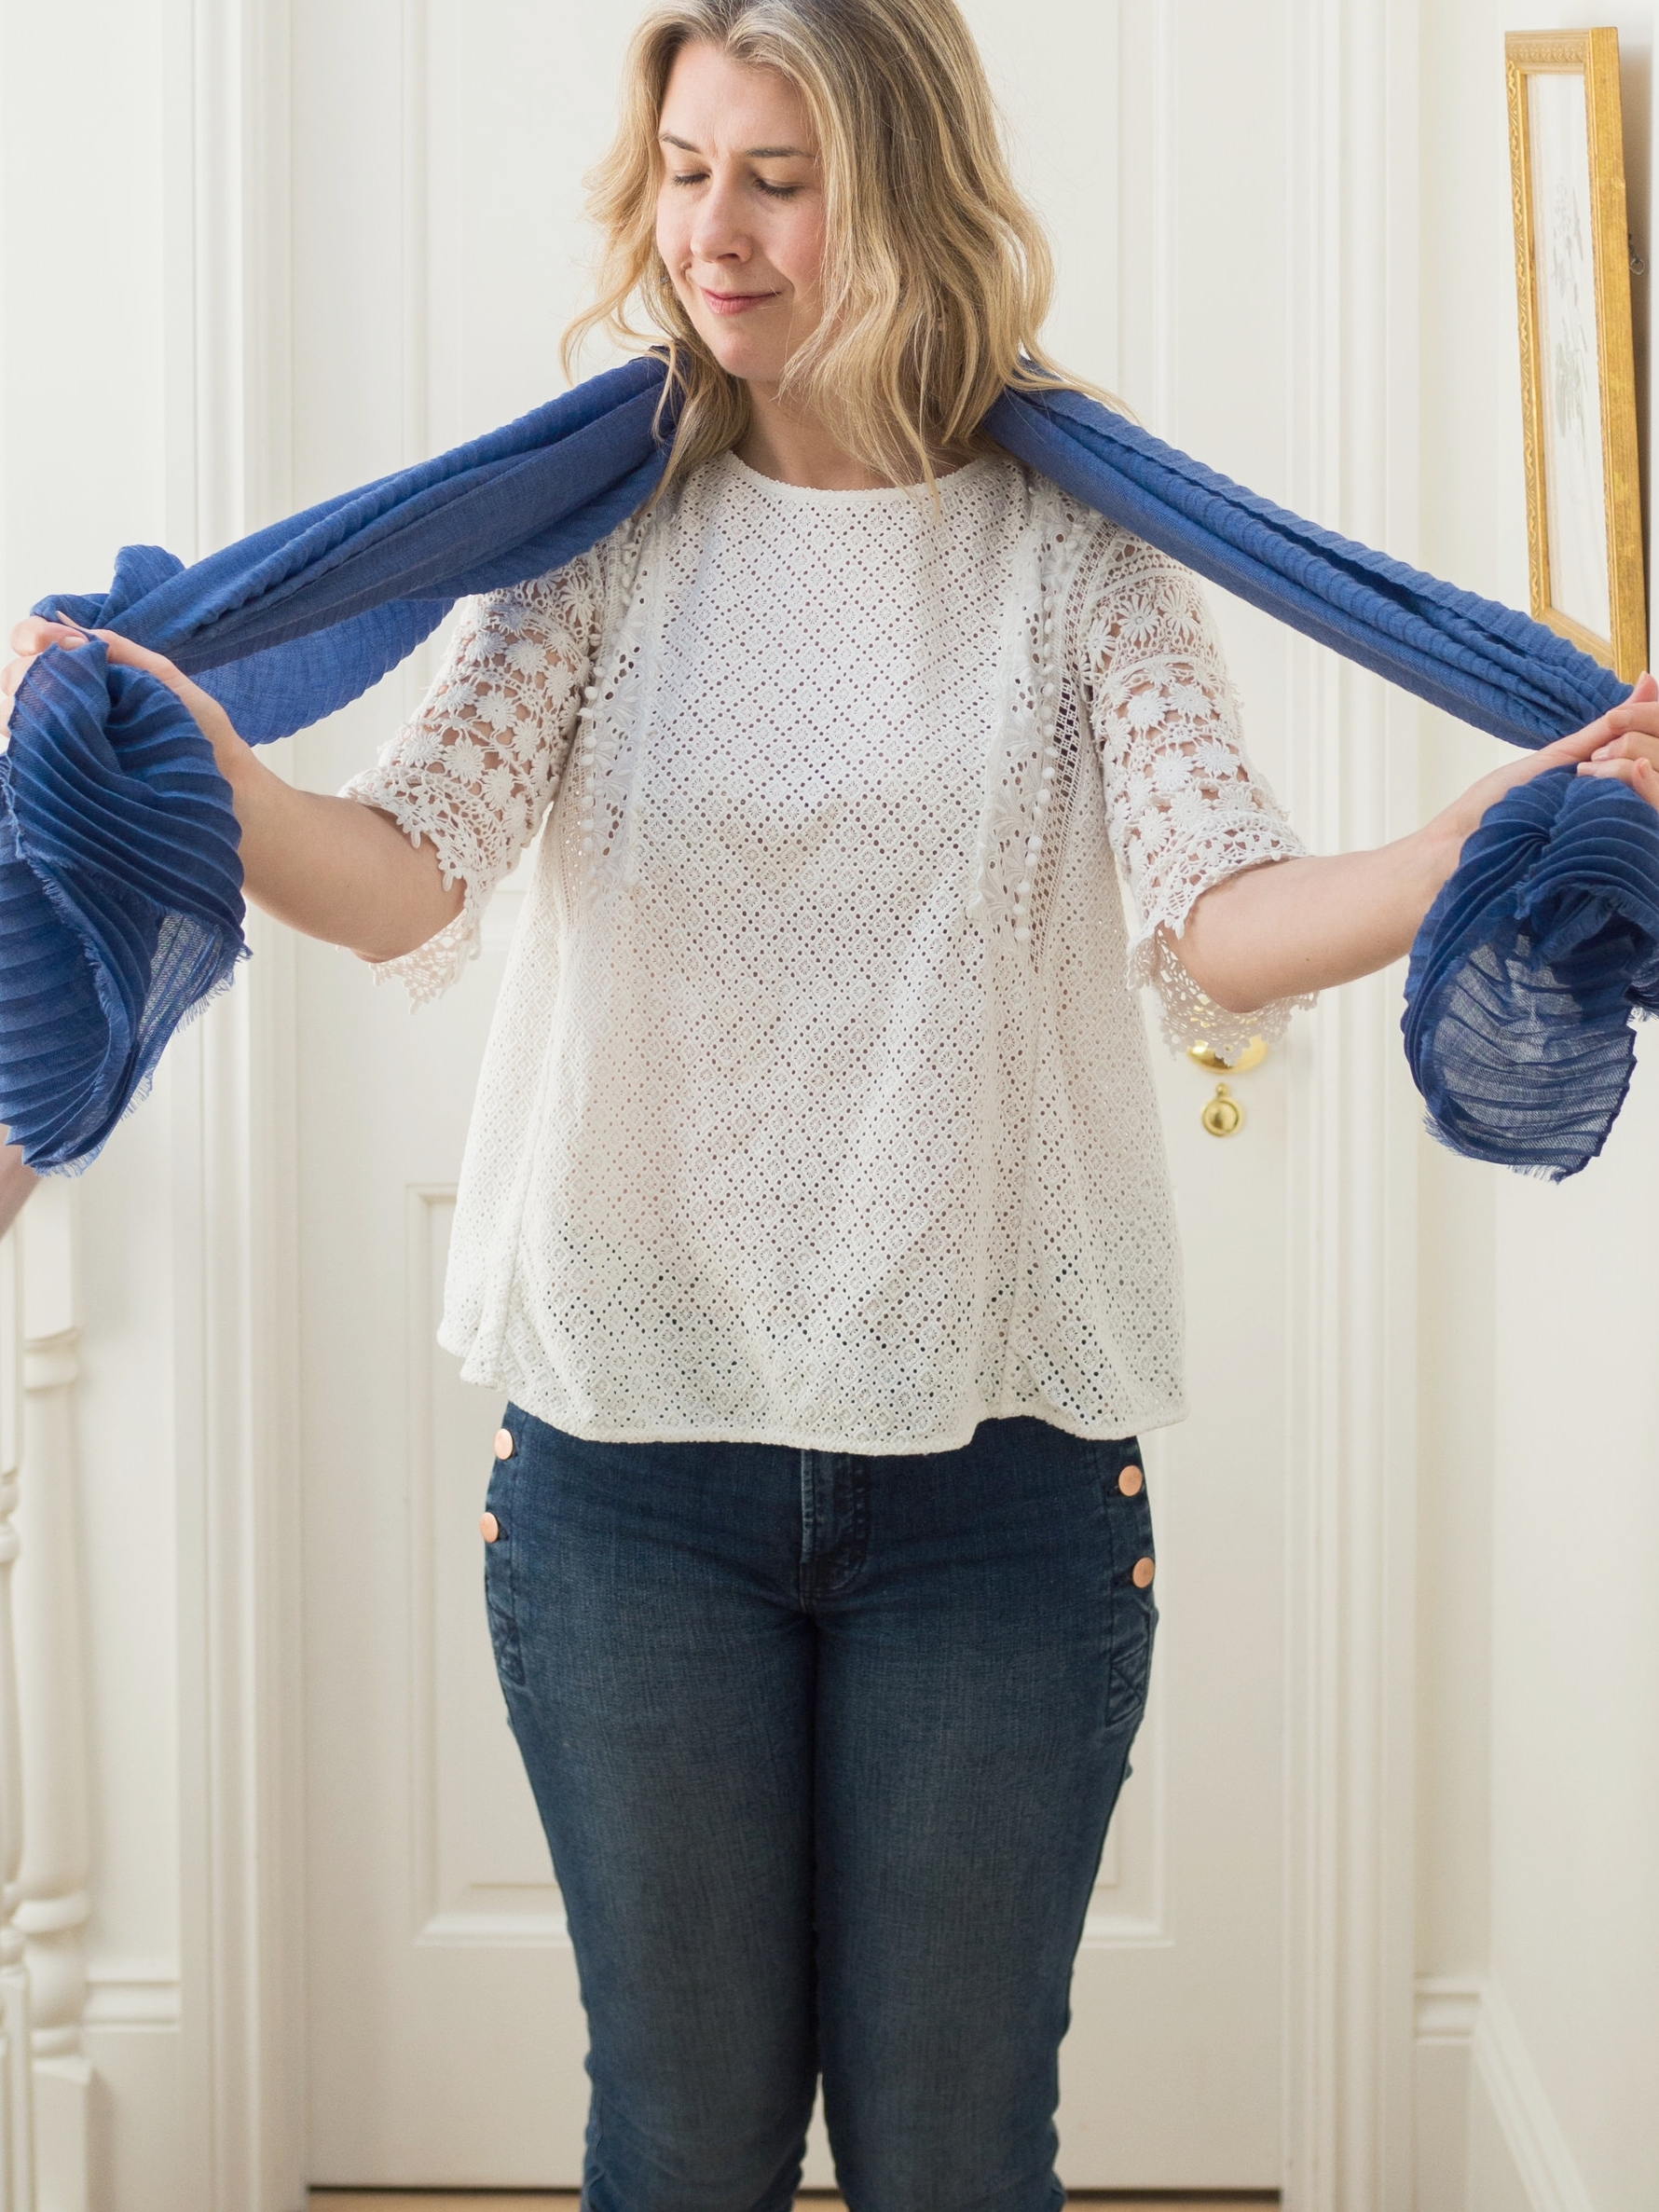 blog_how_to-chambray-1-8.jpg